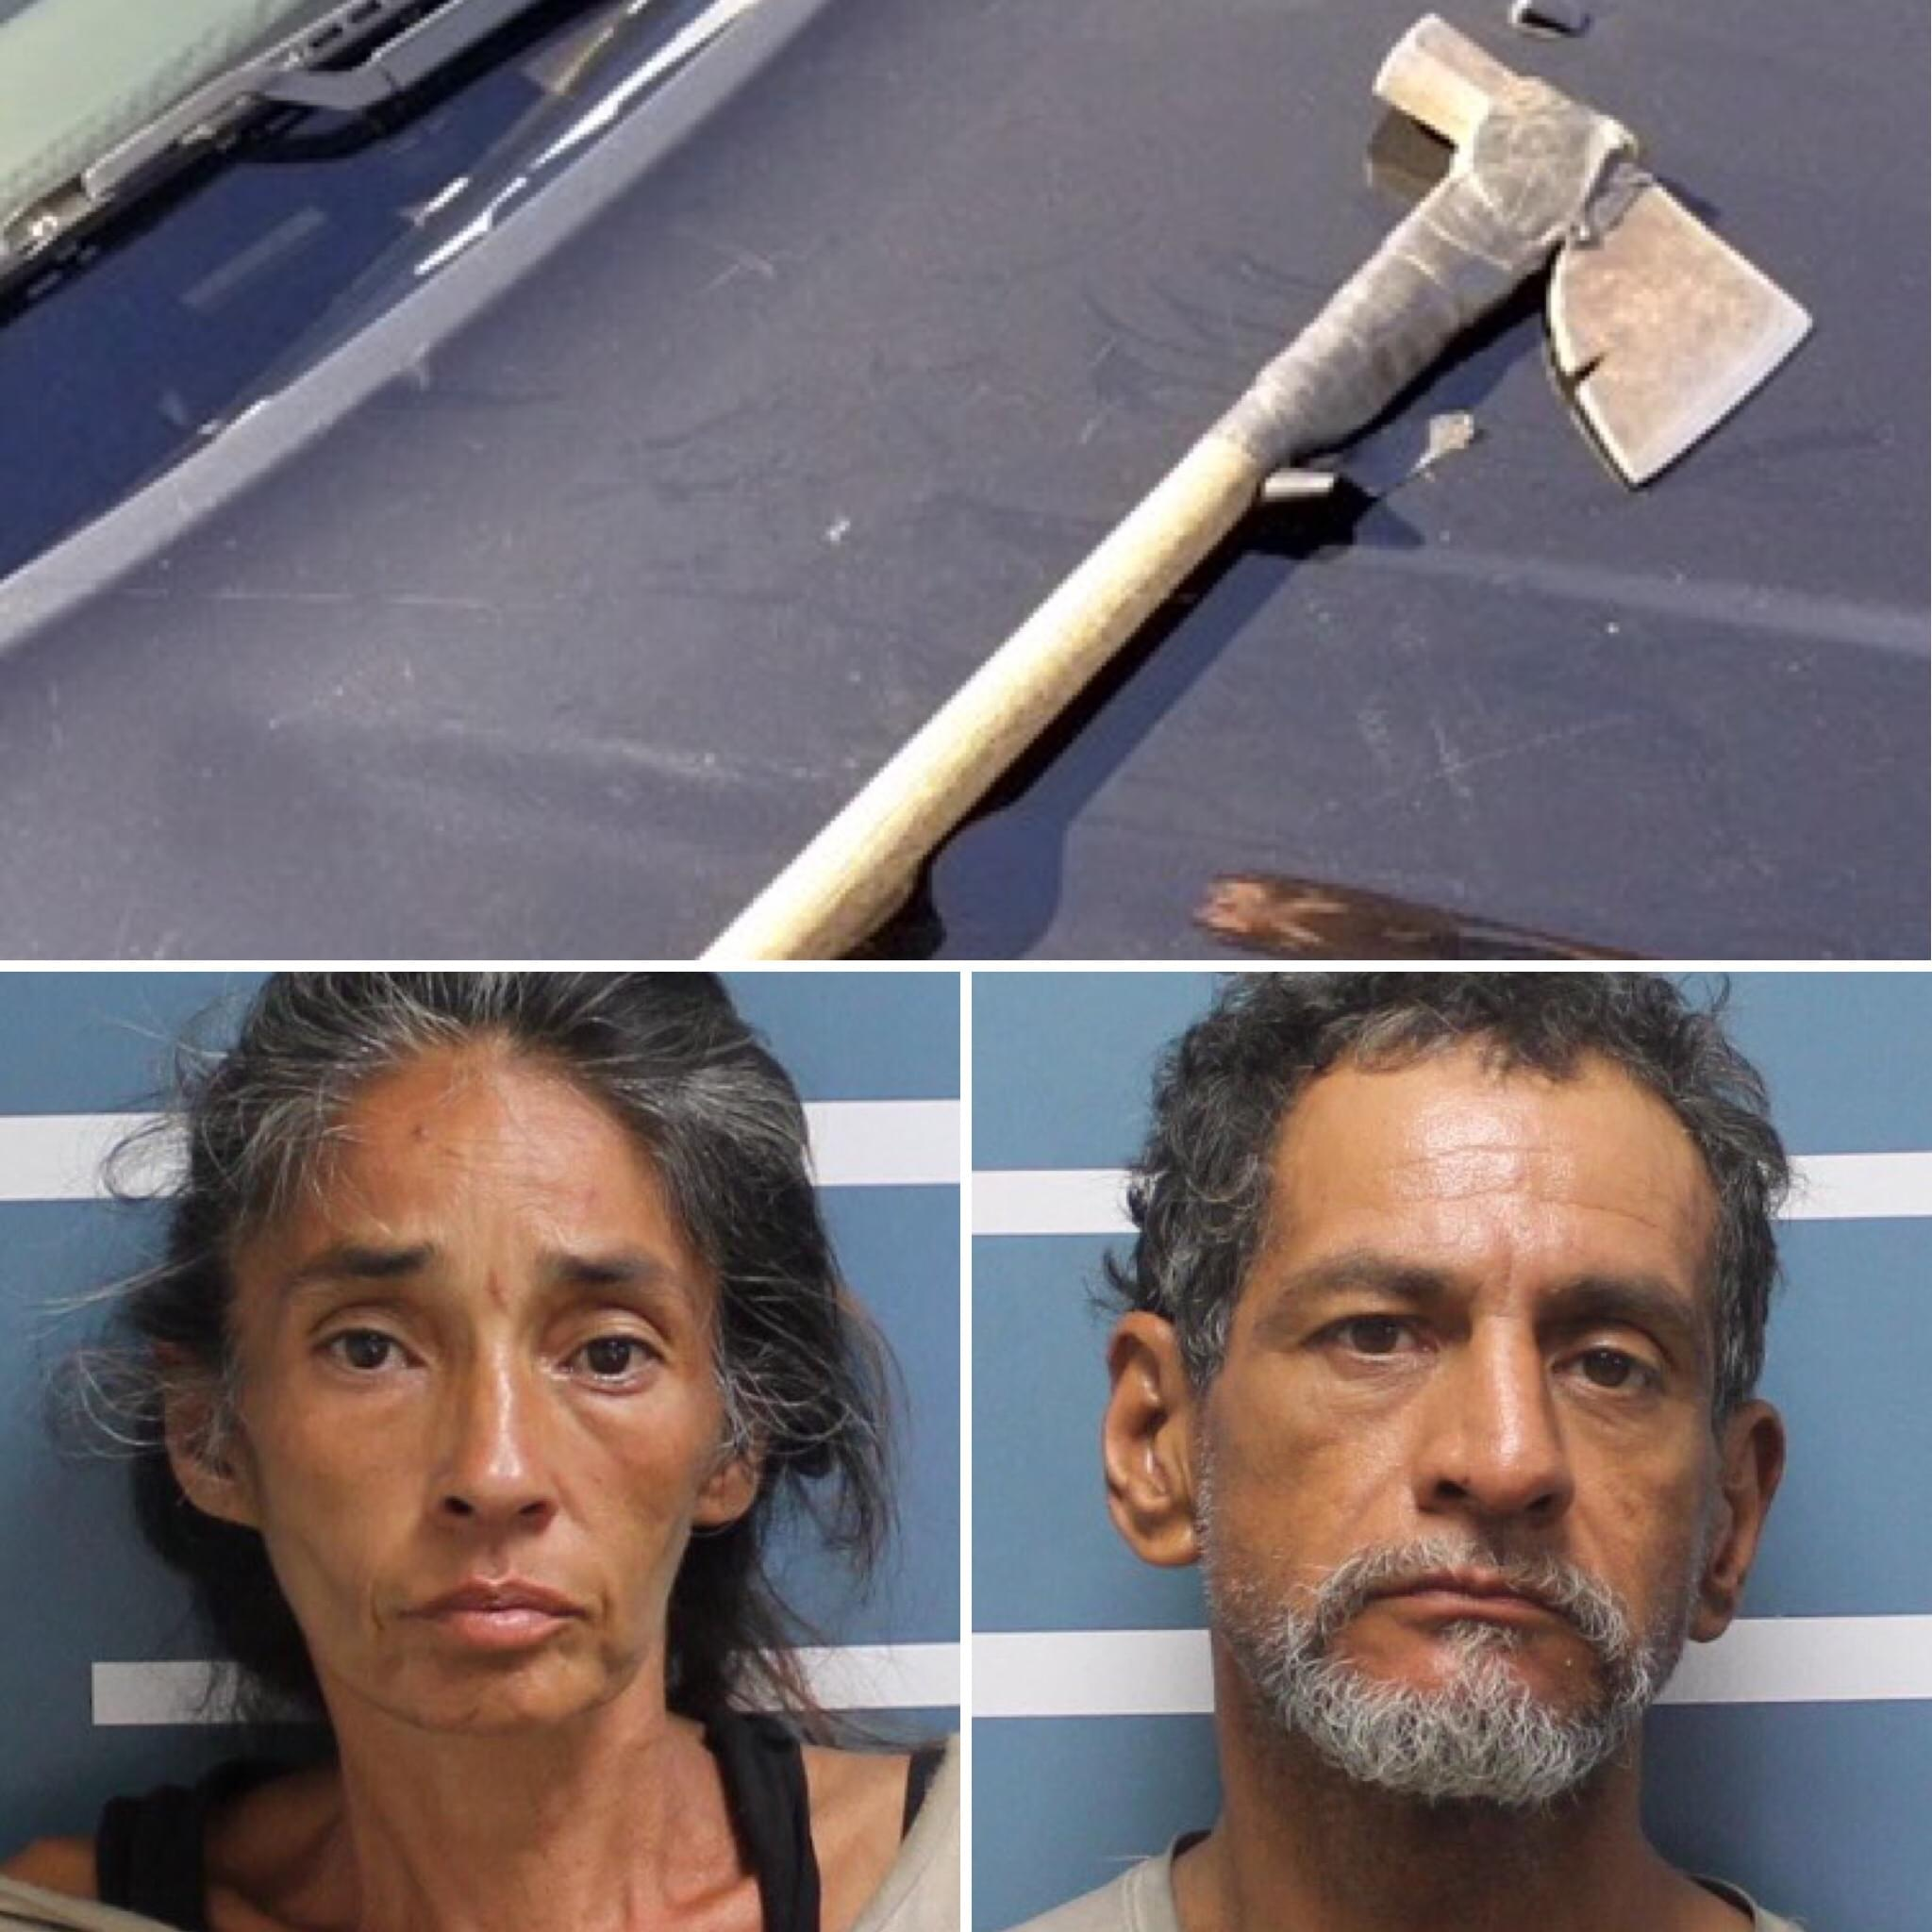 South Valley Couple Accused in Attempted Axe Attack